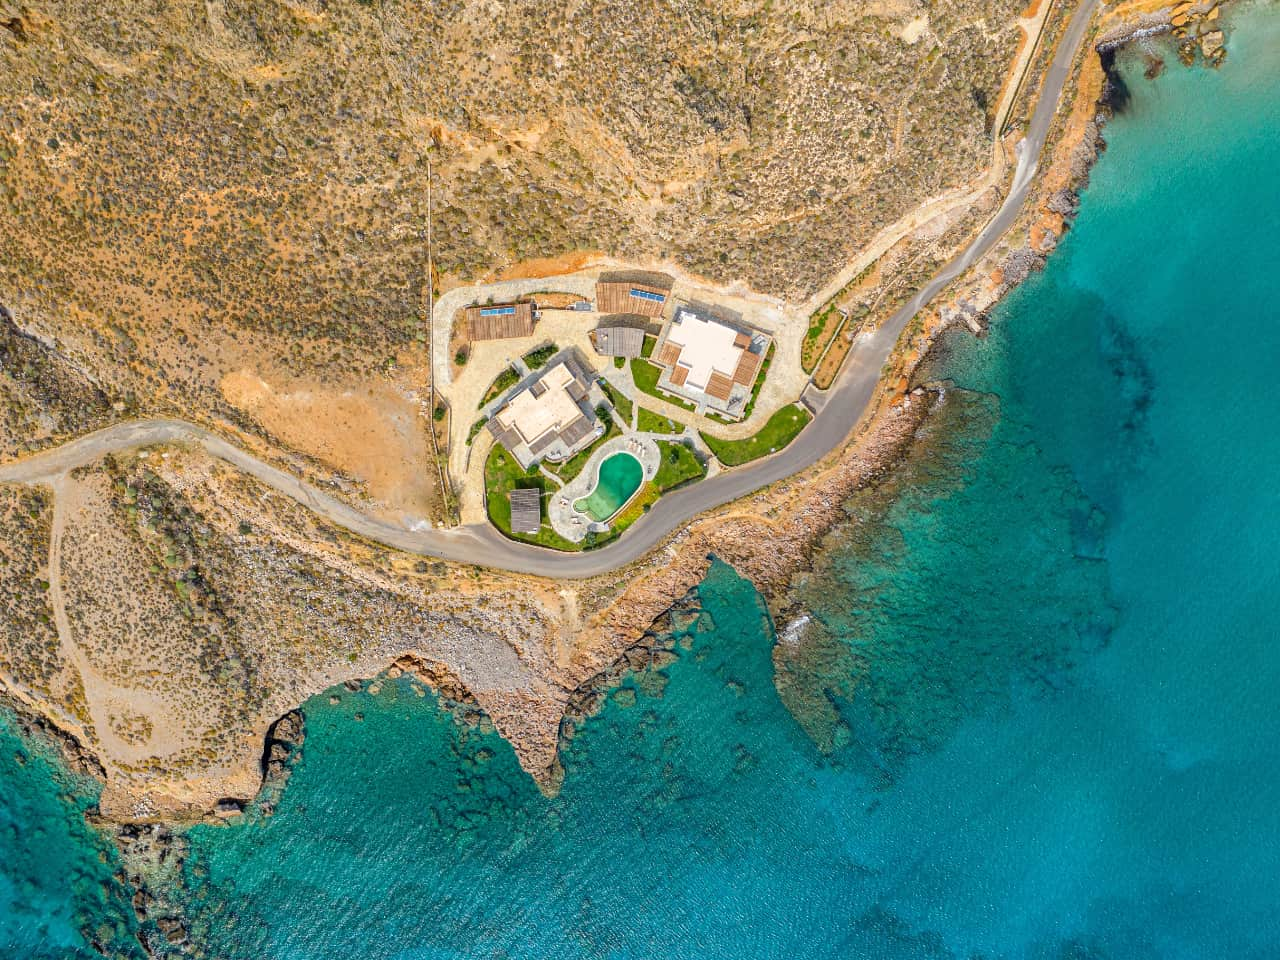 The_magnificent_Caves_Villas_at_Xerokabos_-_freedom_&_tranquility_